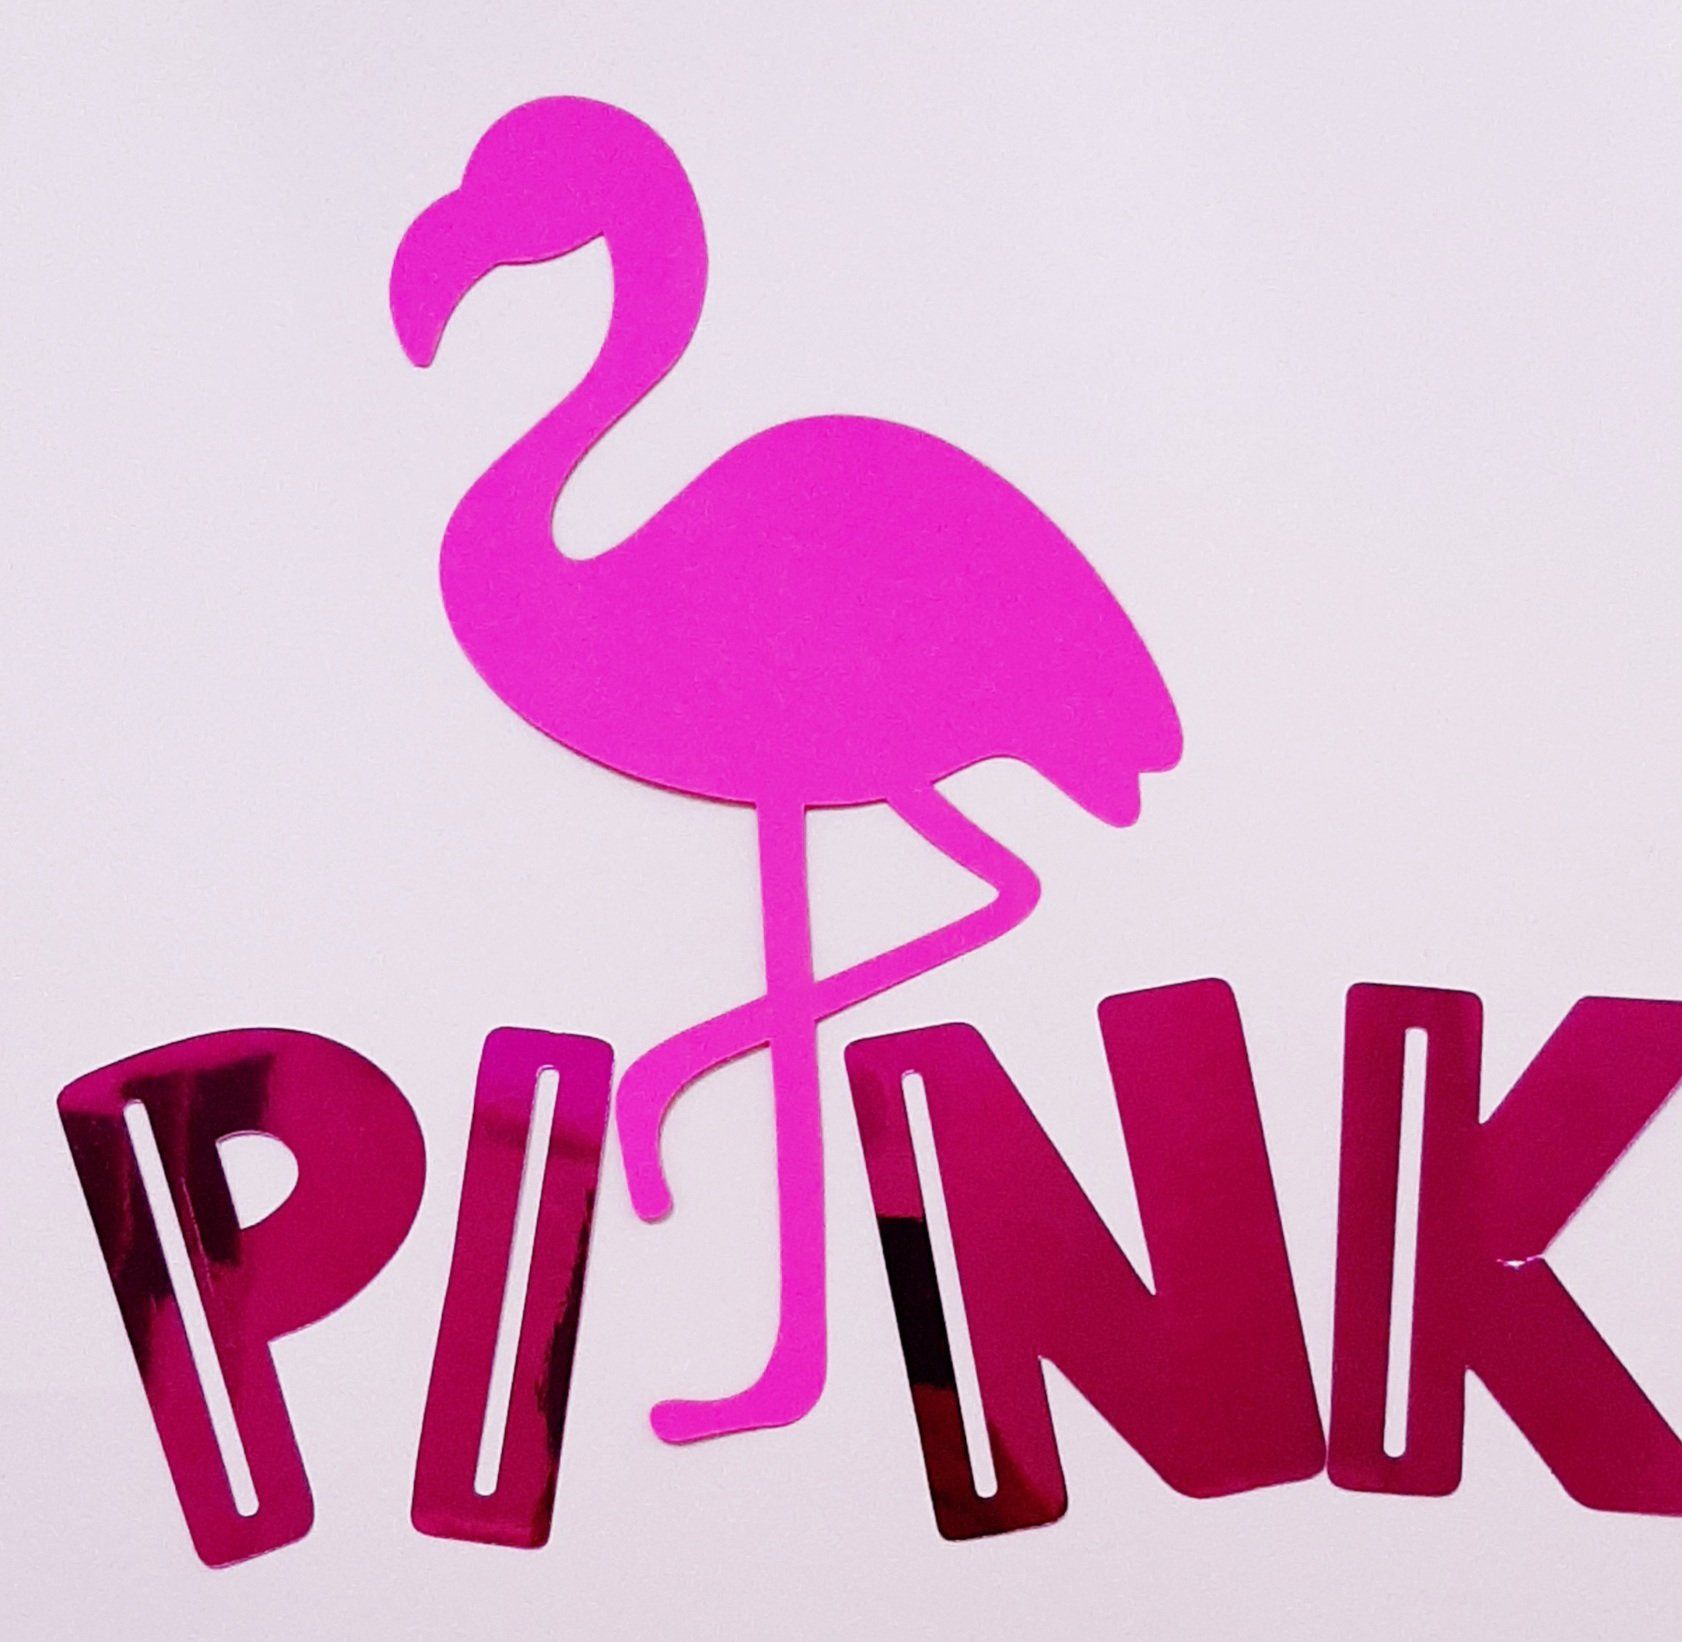 Image of a pink flamingo and pink letters spelling the word PINK